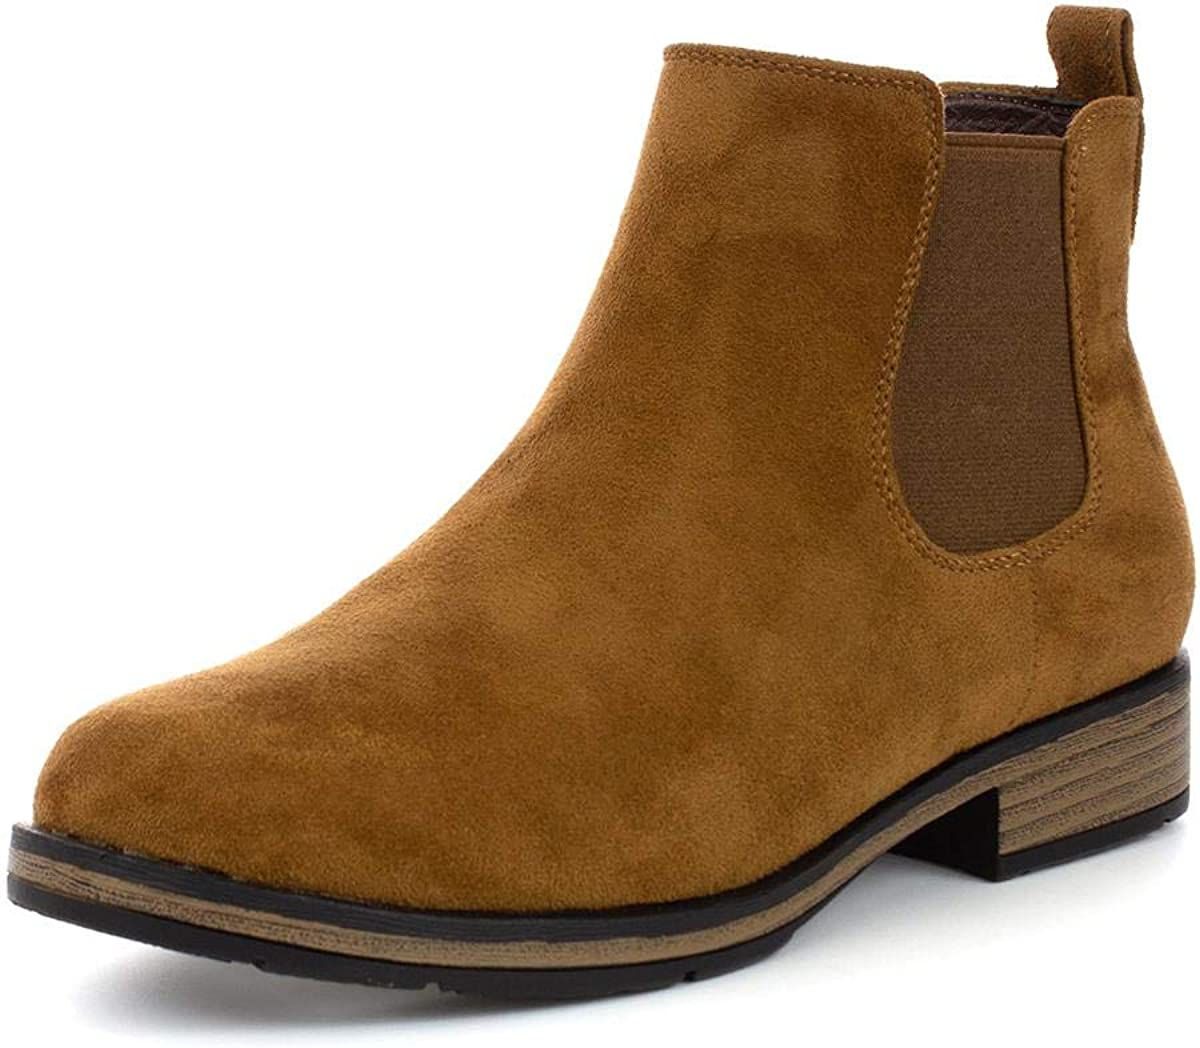 Lilley Womens Tan Faux Suede Ankle Boot